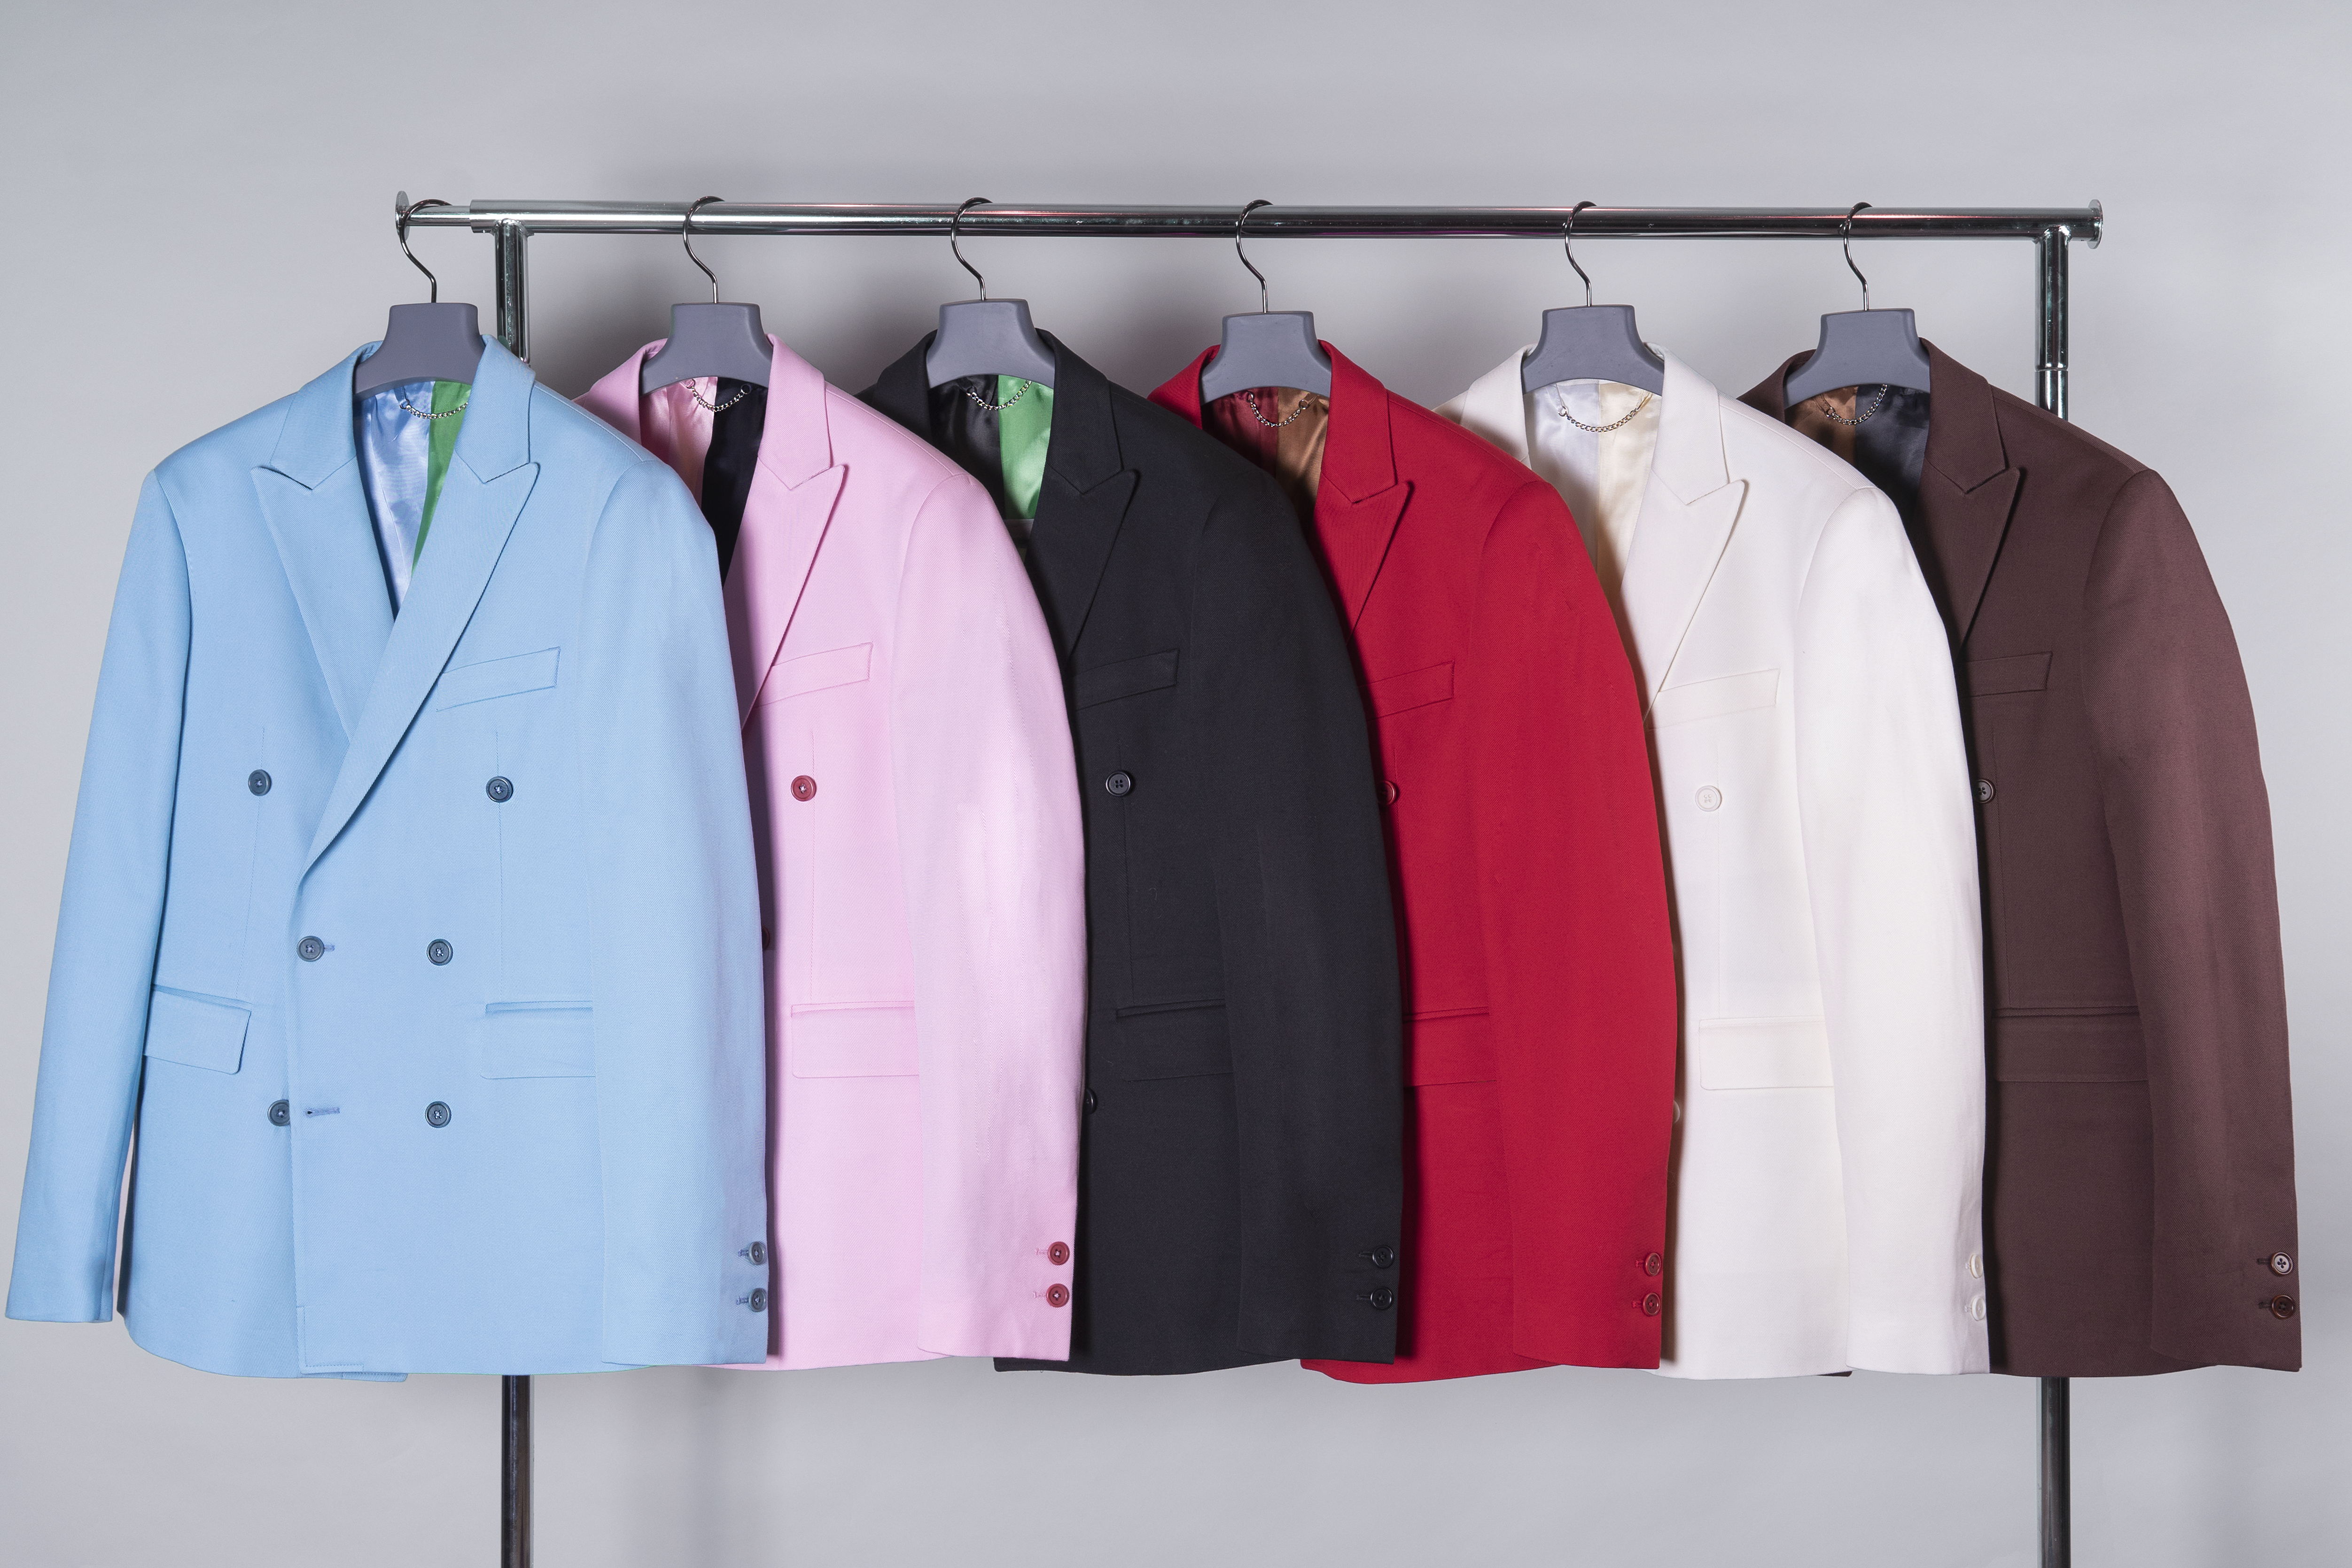 The Timo Weiland collection for spring/summer 2020.